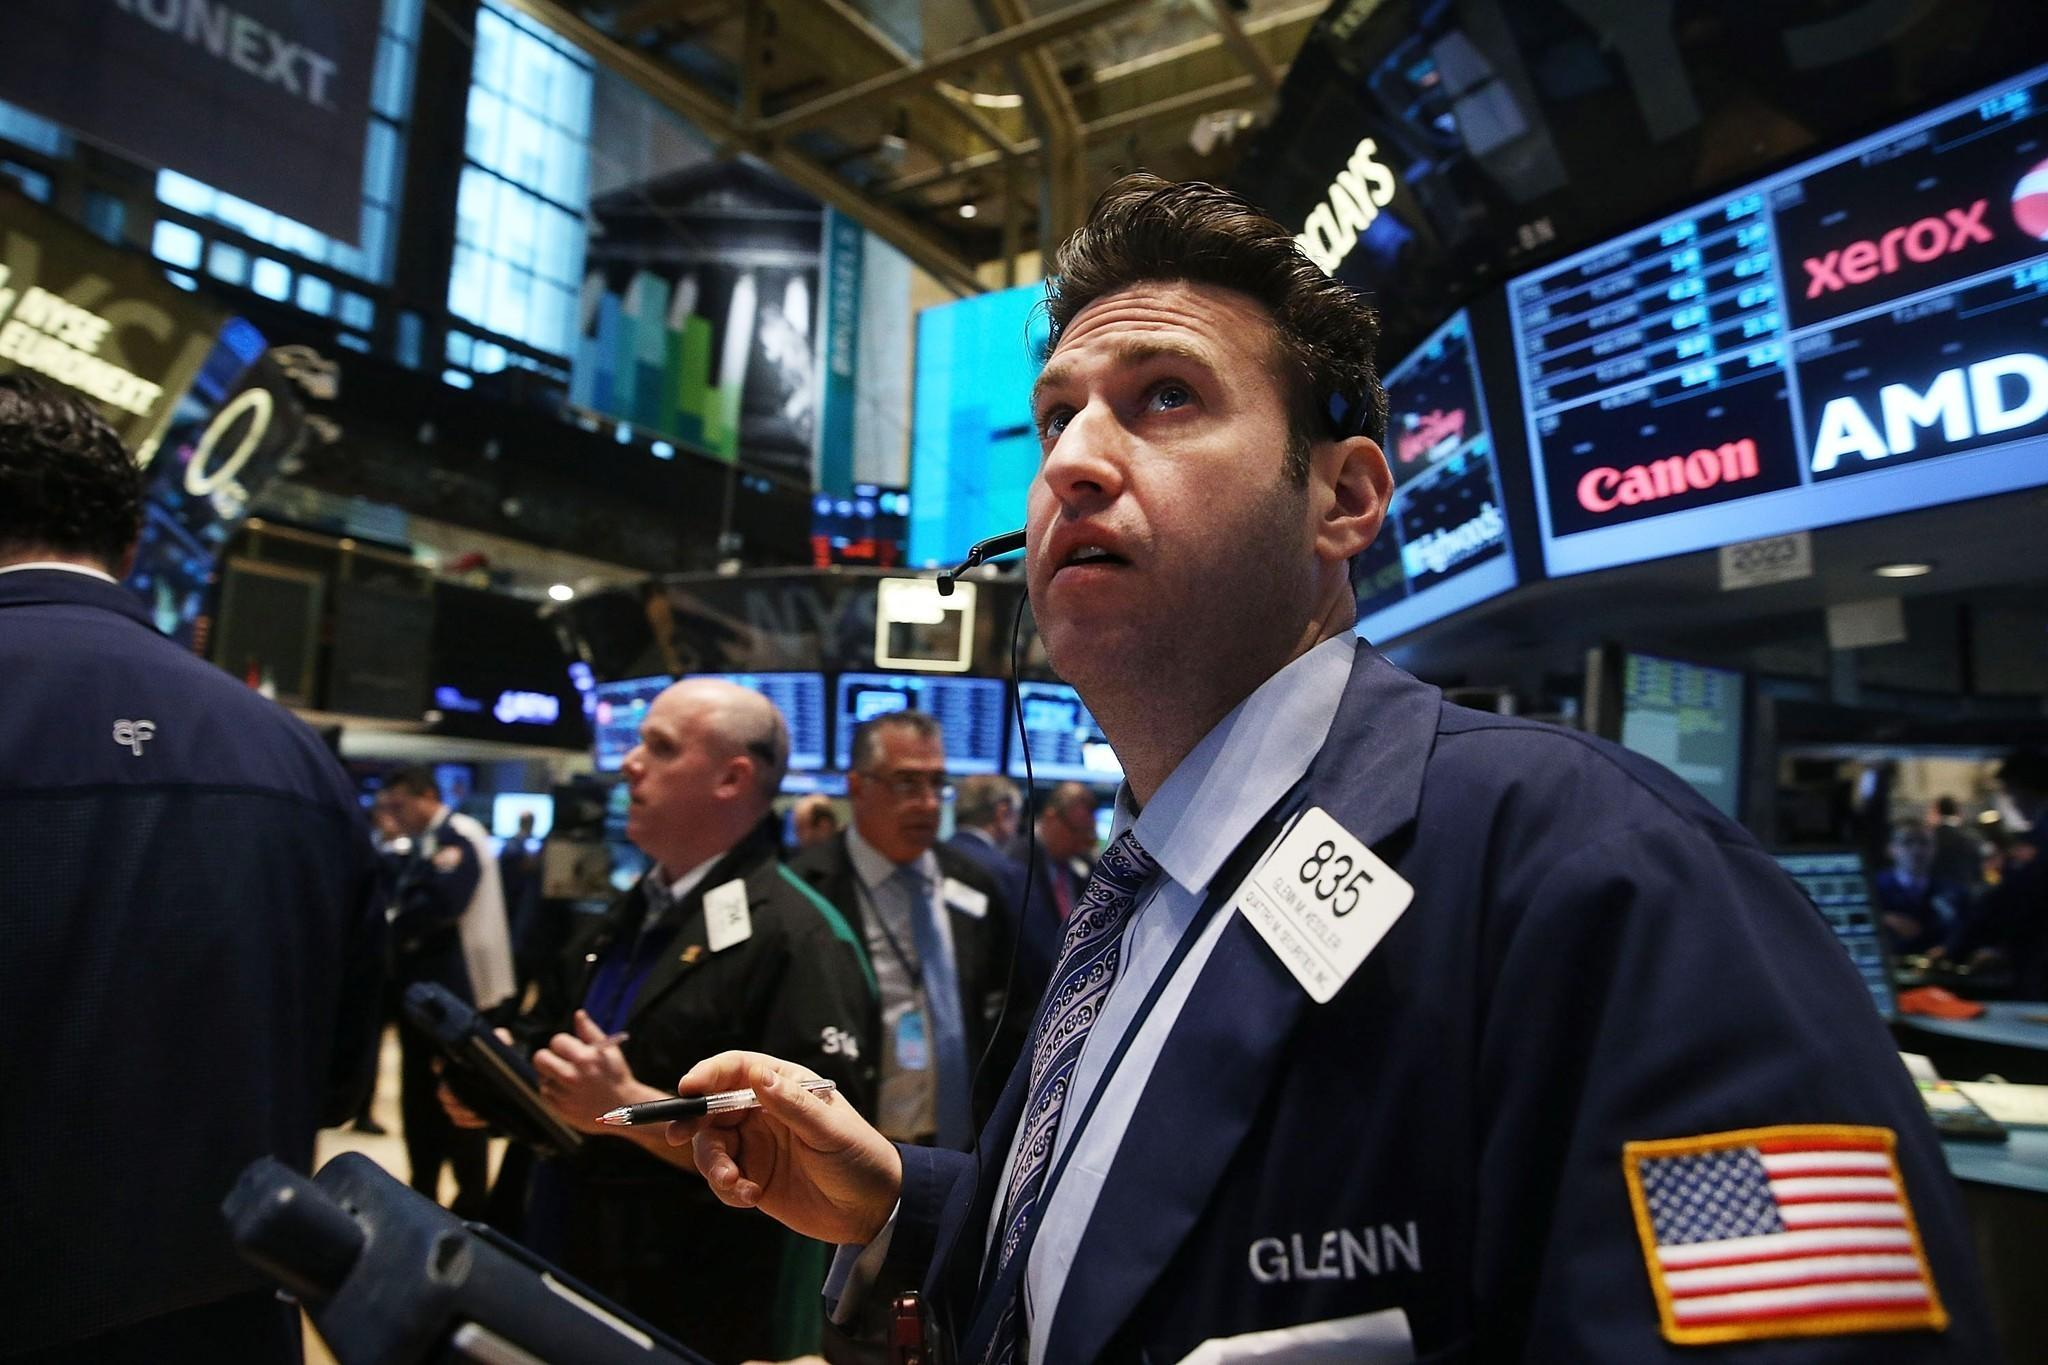 "High levels of cortisol, the stress hormone, may contribute to the risk aversion and ""irrational pessimism"" found among bankers and fund managers during financial crises, according to a new study. The photo shows the New York Stock Exchange."